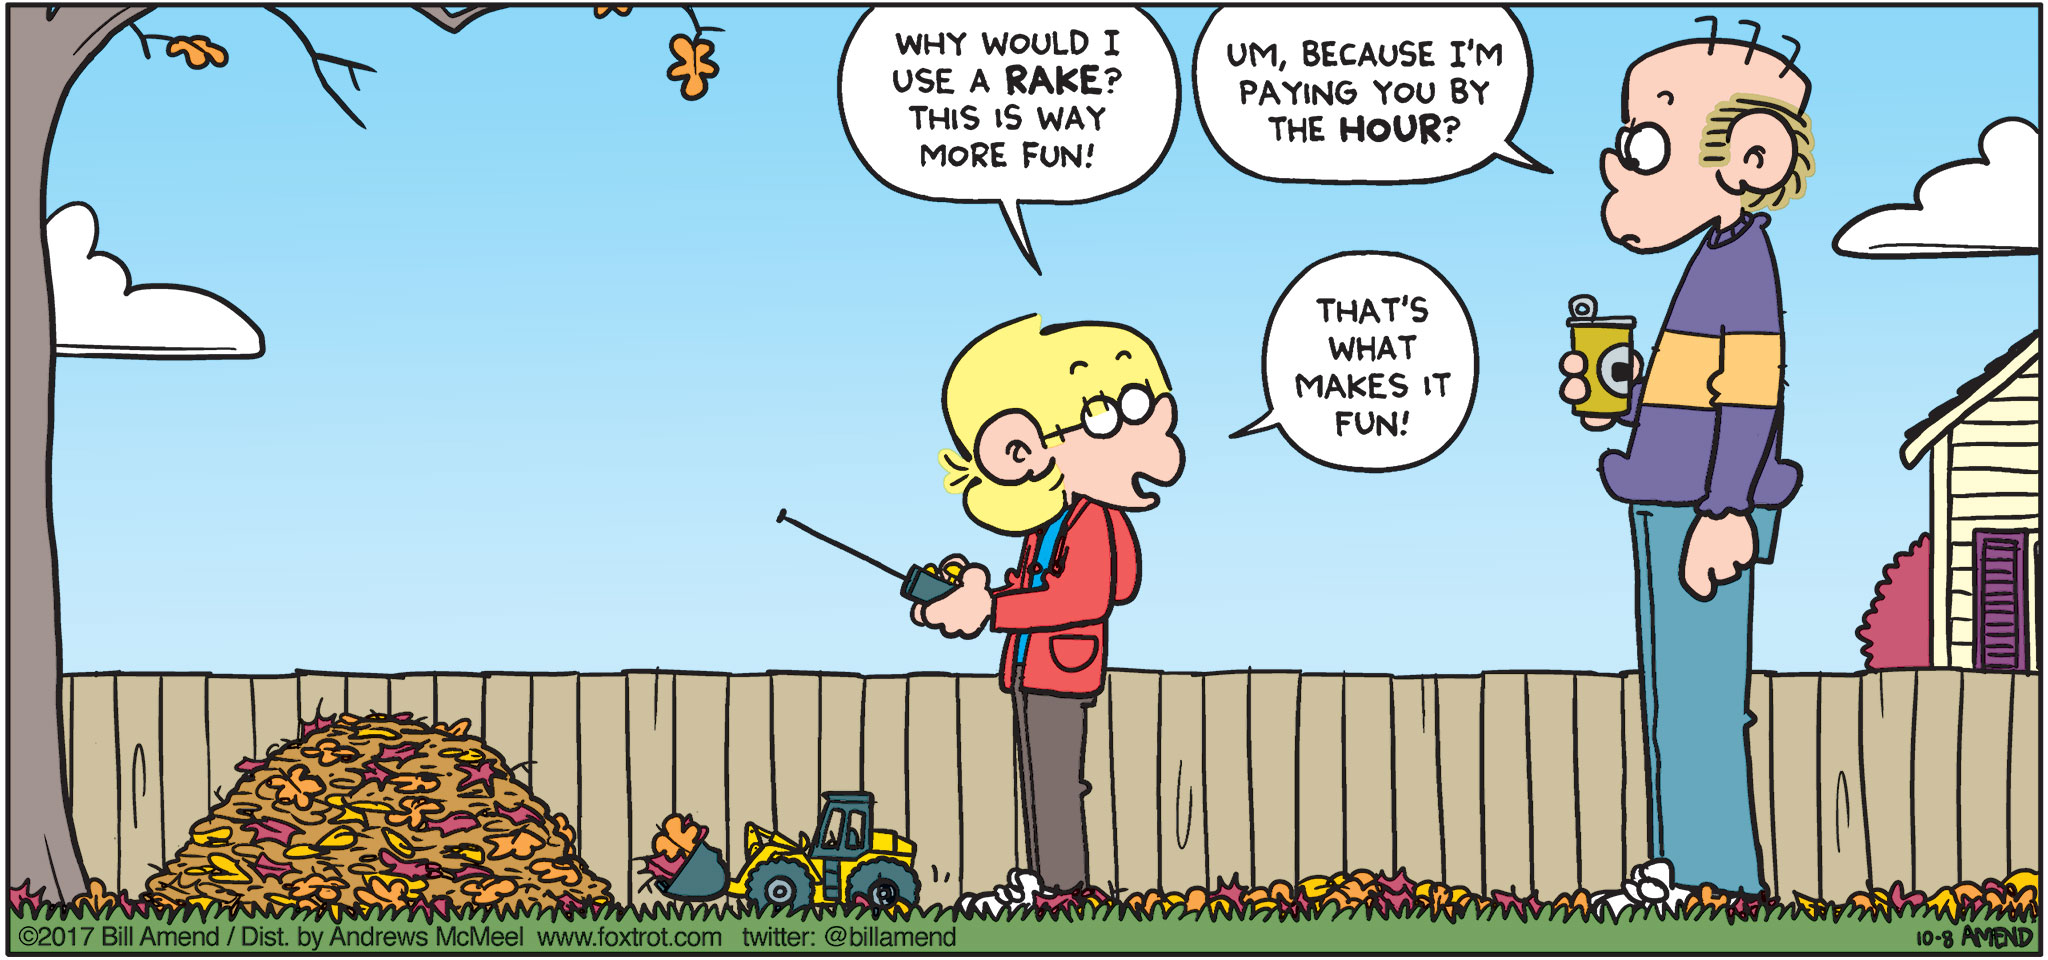 "FoxTrot by Bill Amend - ""RC Raker"" published October 8, 2017 - Jason says: Why would I use a rake? This is way more fun! Roger says: Um, because I'm paying you by the hour? Jason says: That's what makes it fun!"